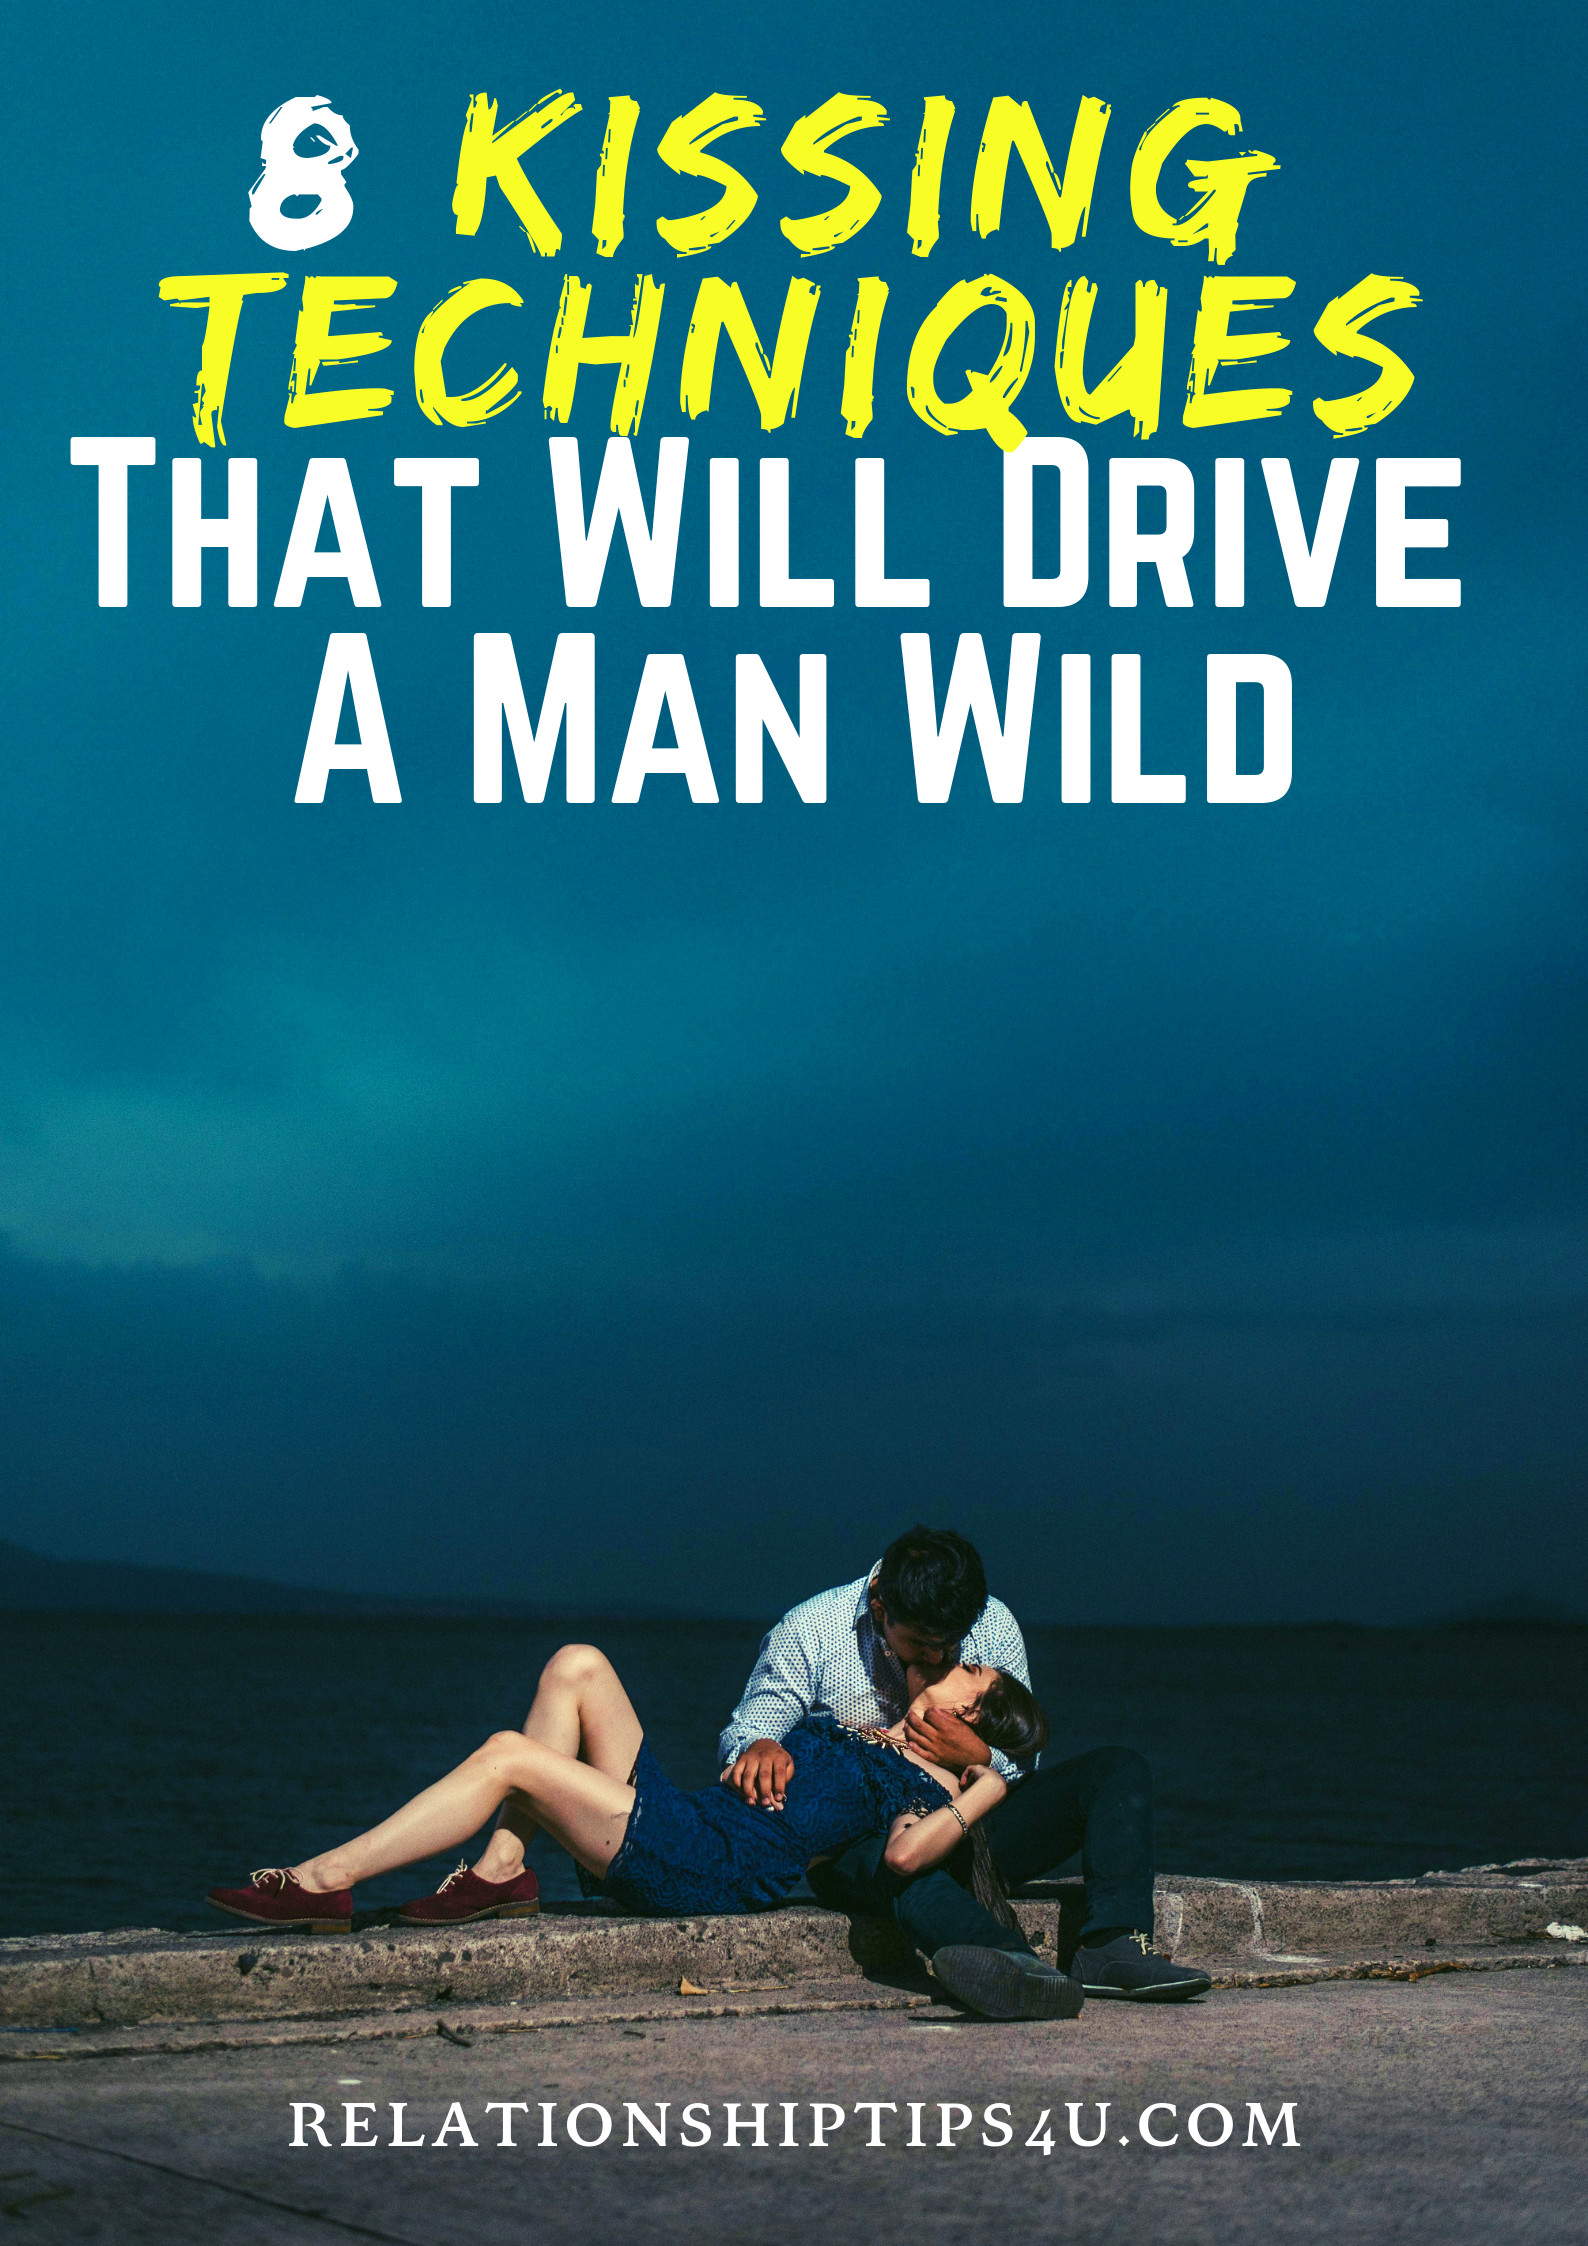 8 Kissing Techniques to Drive a Man Wild - Relationship